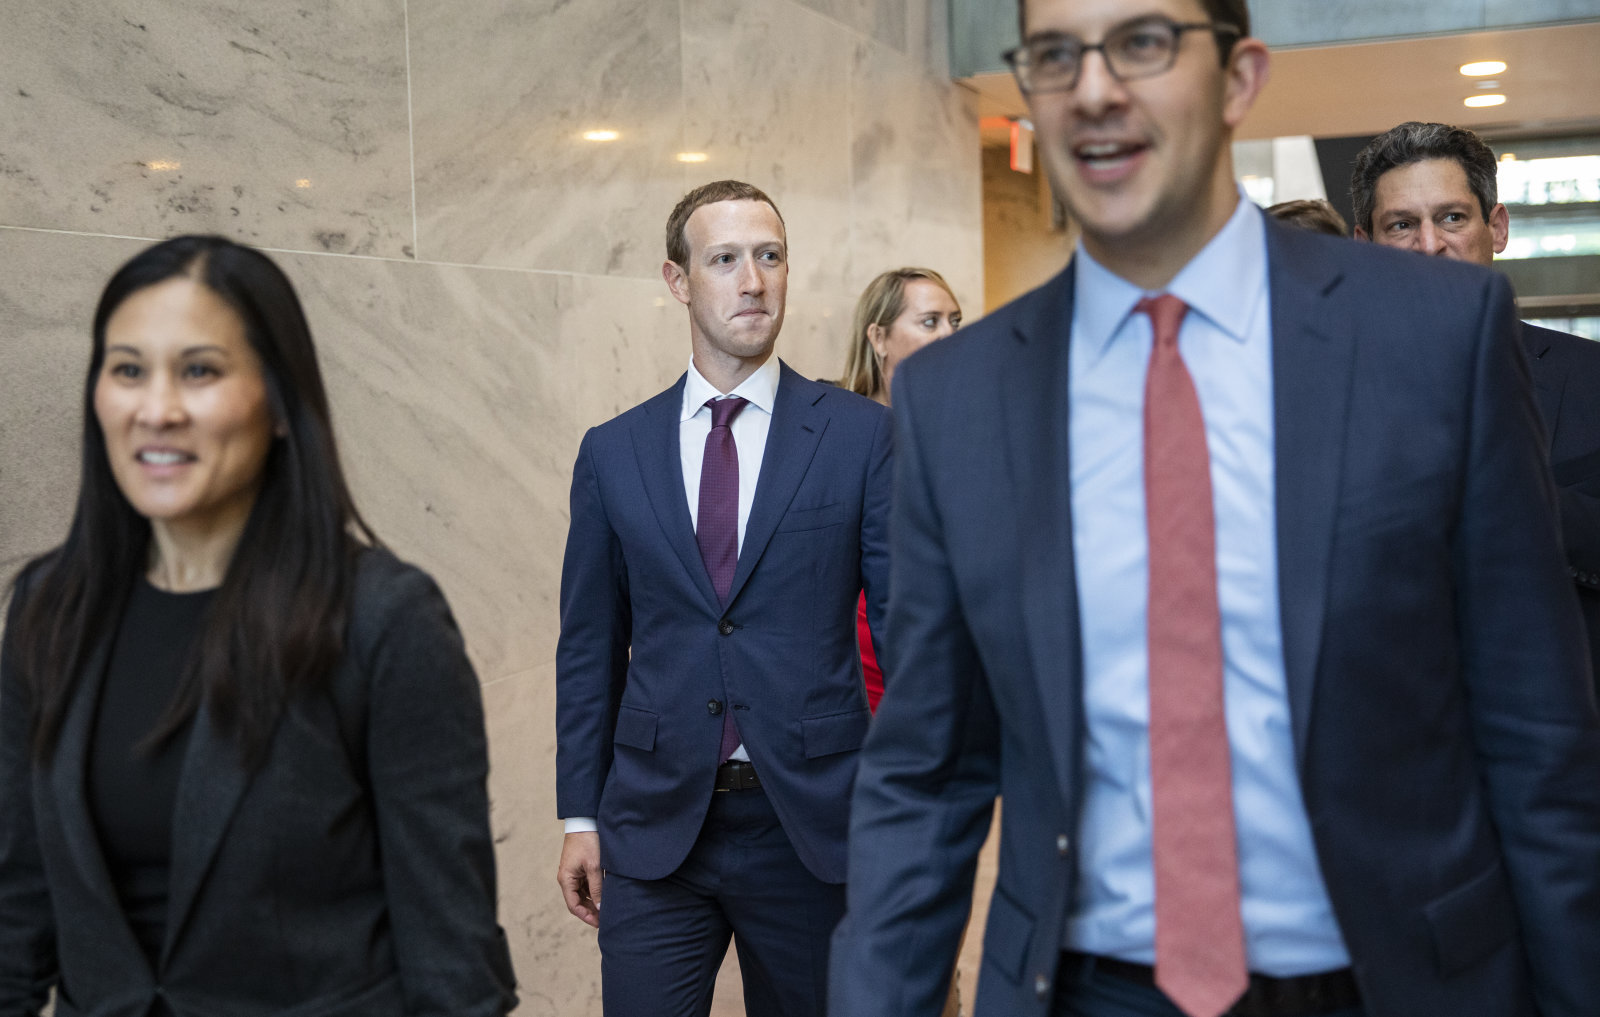 Zuckerberg to Face US Congress over Libra, Lawmakers Remain Skeptical on Privacy